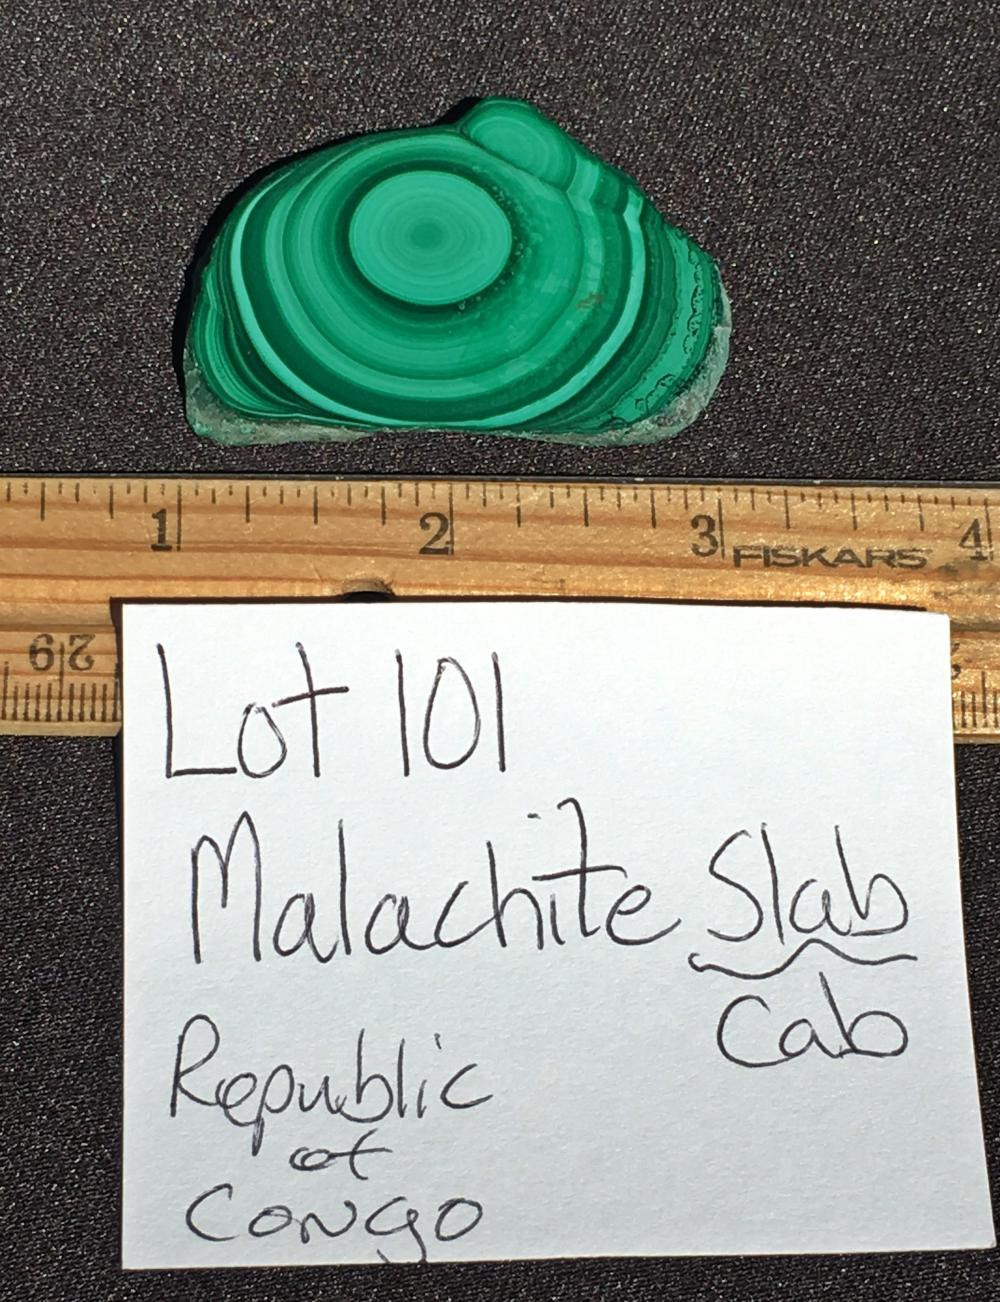 Lot 101: Malachite, Rock, Crystal, Natural, Collectible, Mineral, Specimen